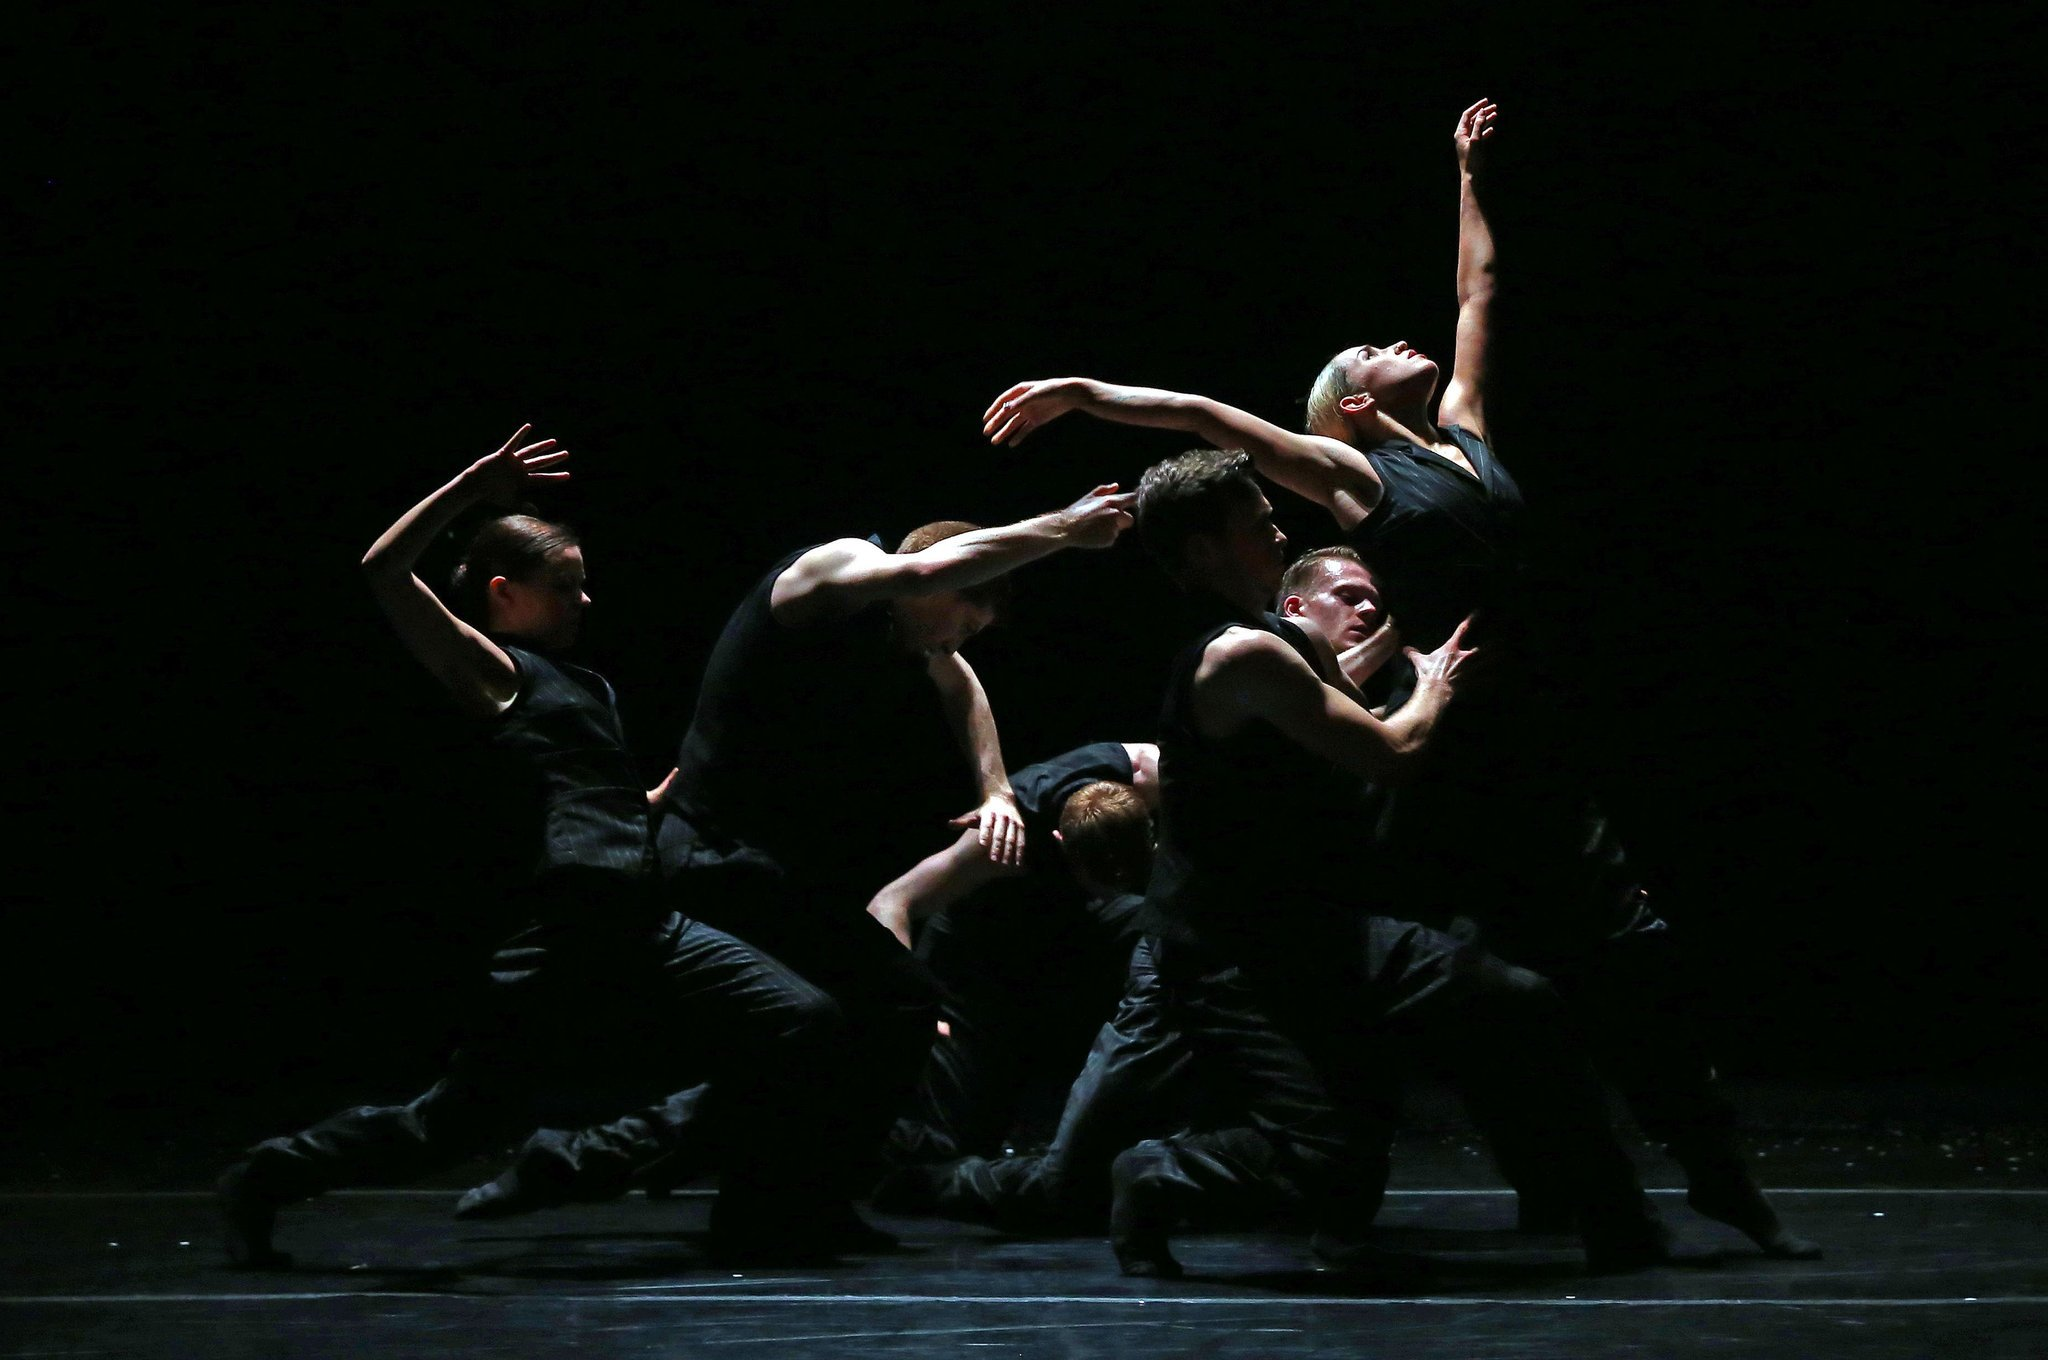 """Ballet BC- """"Solo Echo,"""" a dance full of yearning choreographed by Crystal Pite, an alumna of Ballet Frankfurt, at the Joyce Theater on Wednesday. Credit Andrea Mohin:The New York Times"""